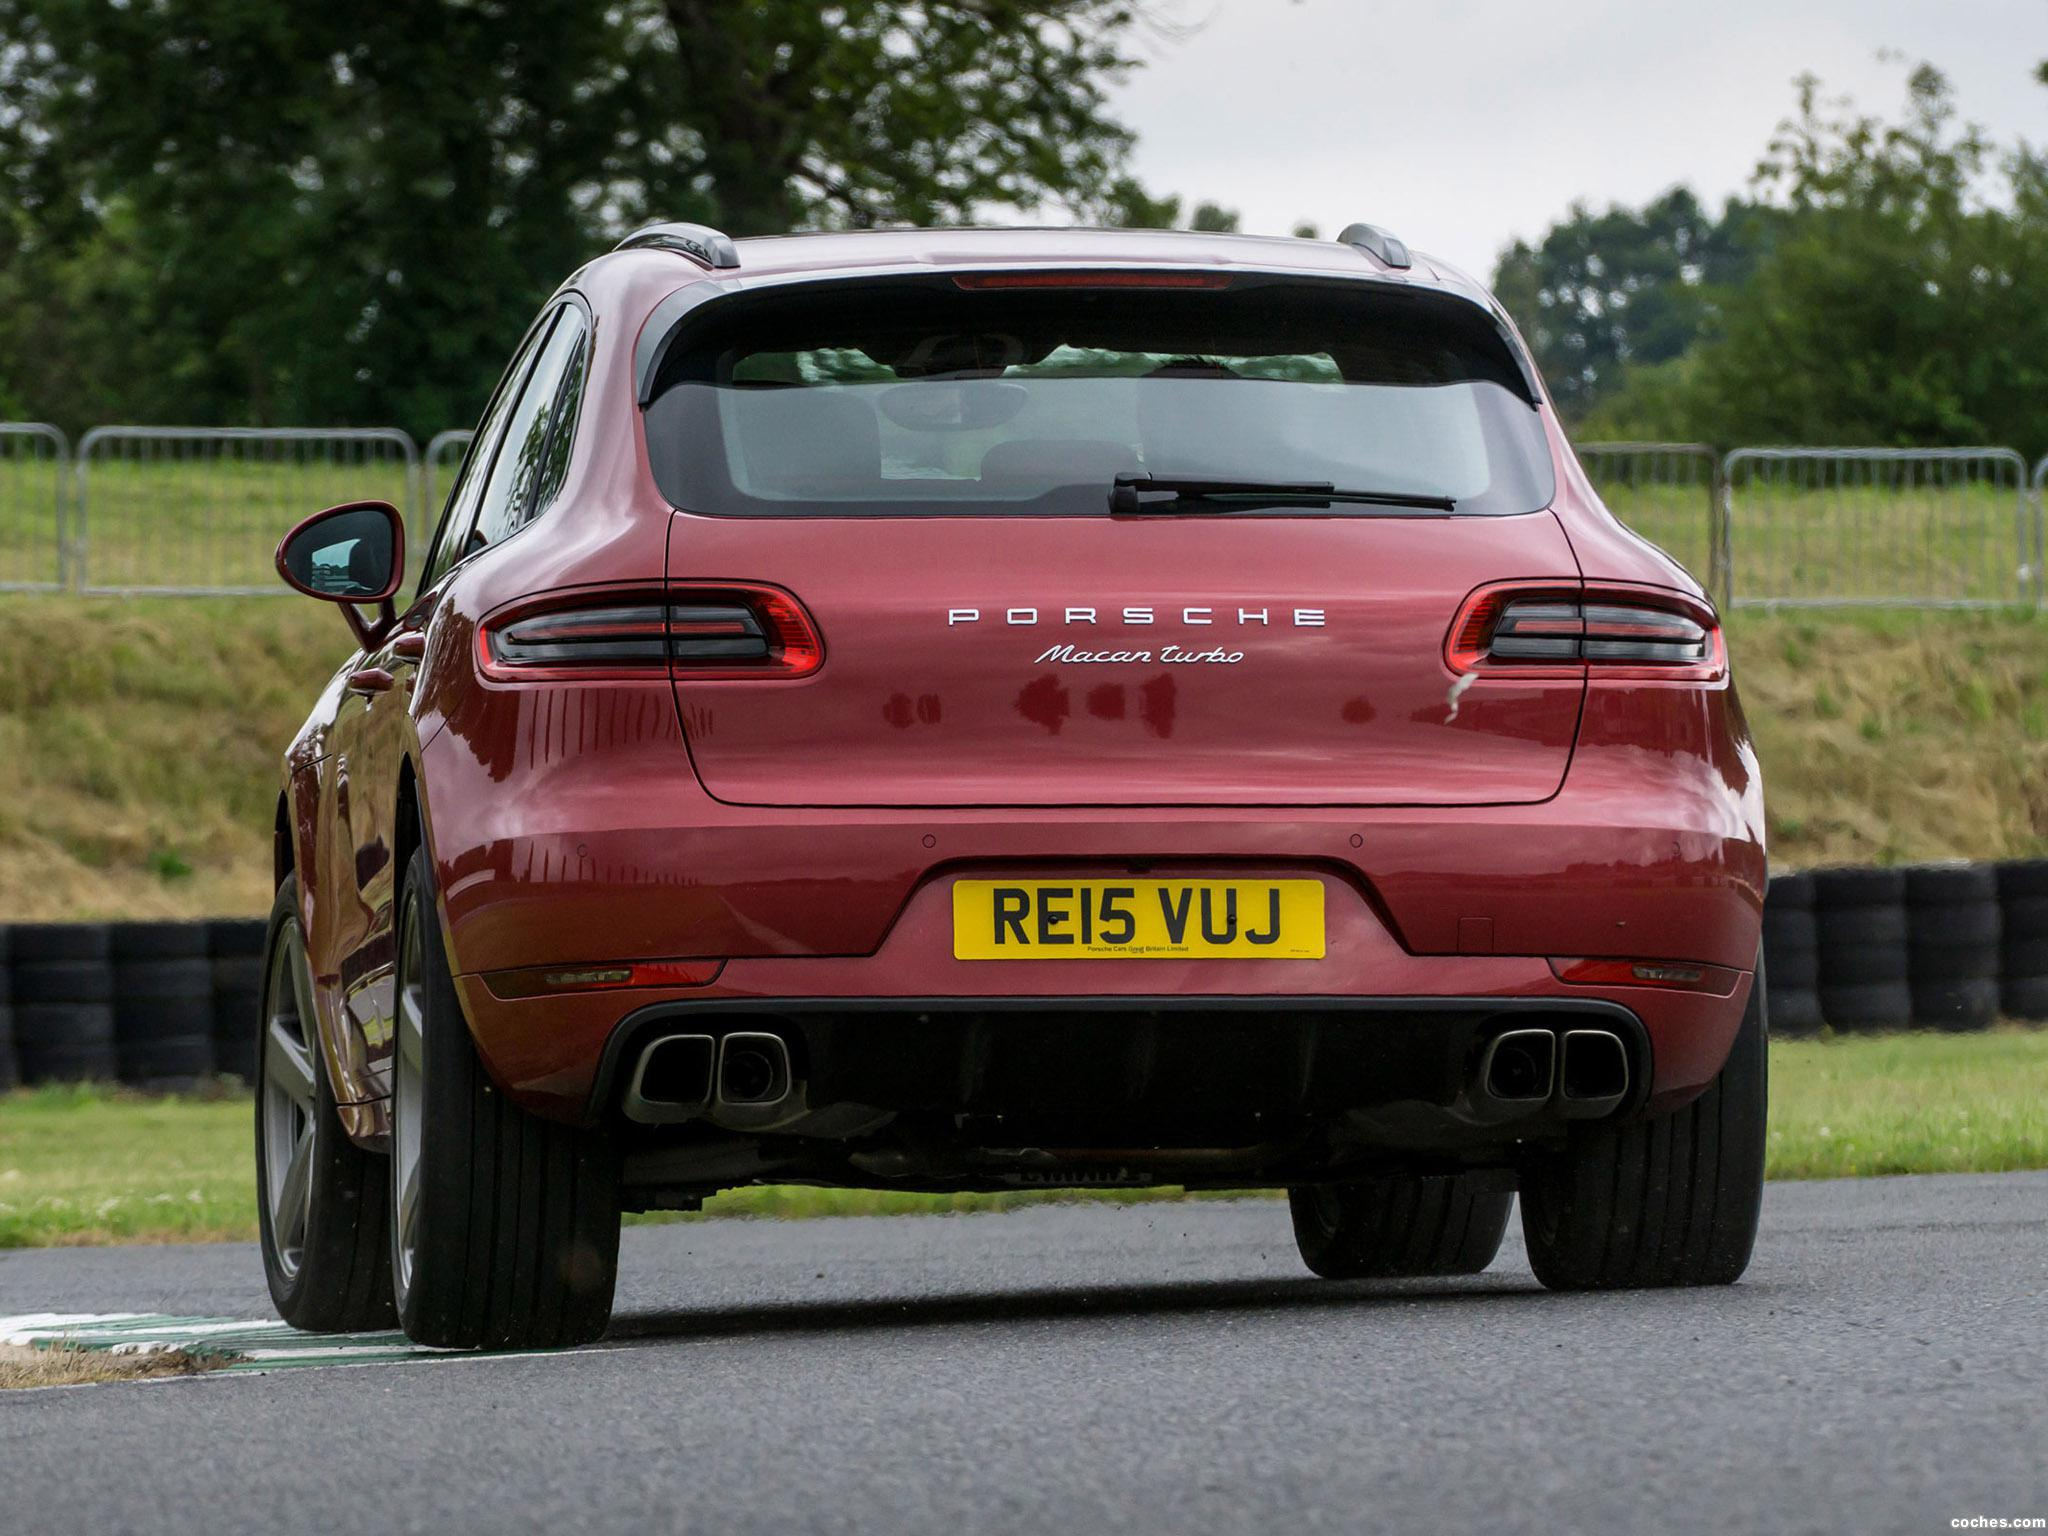 Foto 5 de Porsche Macan Turbo UK 95B 2014